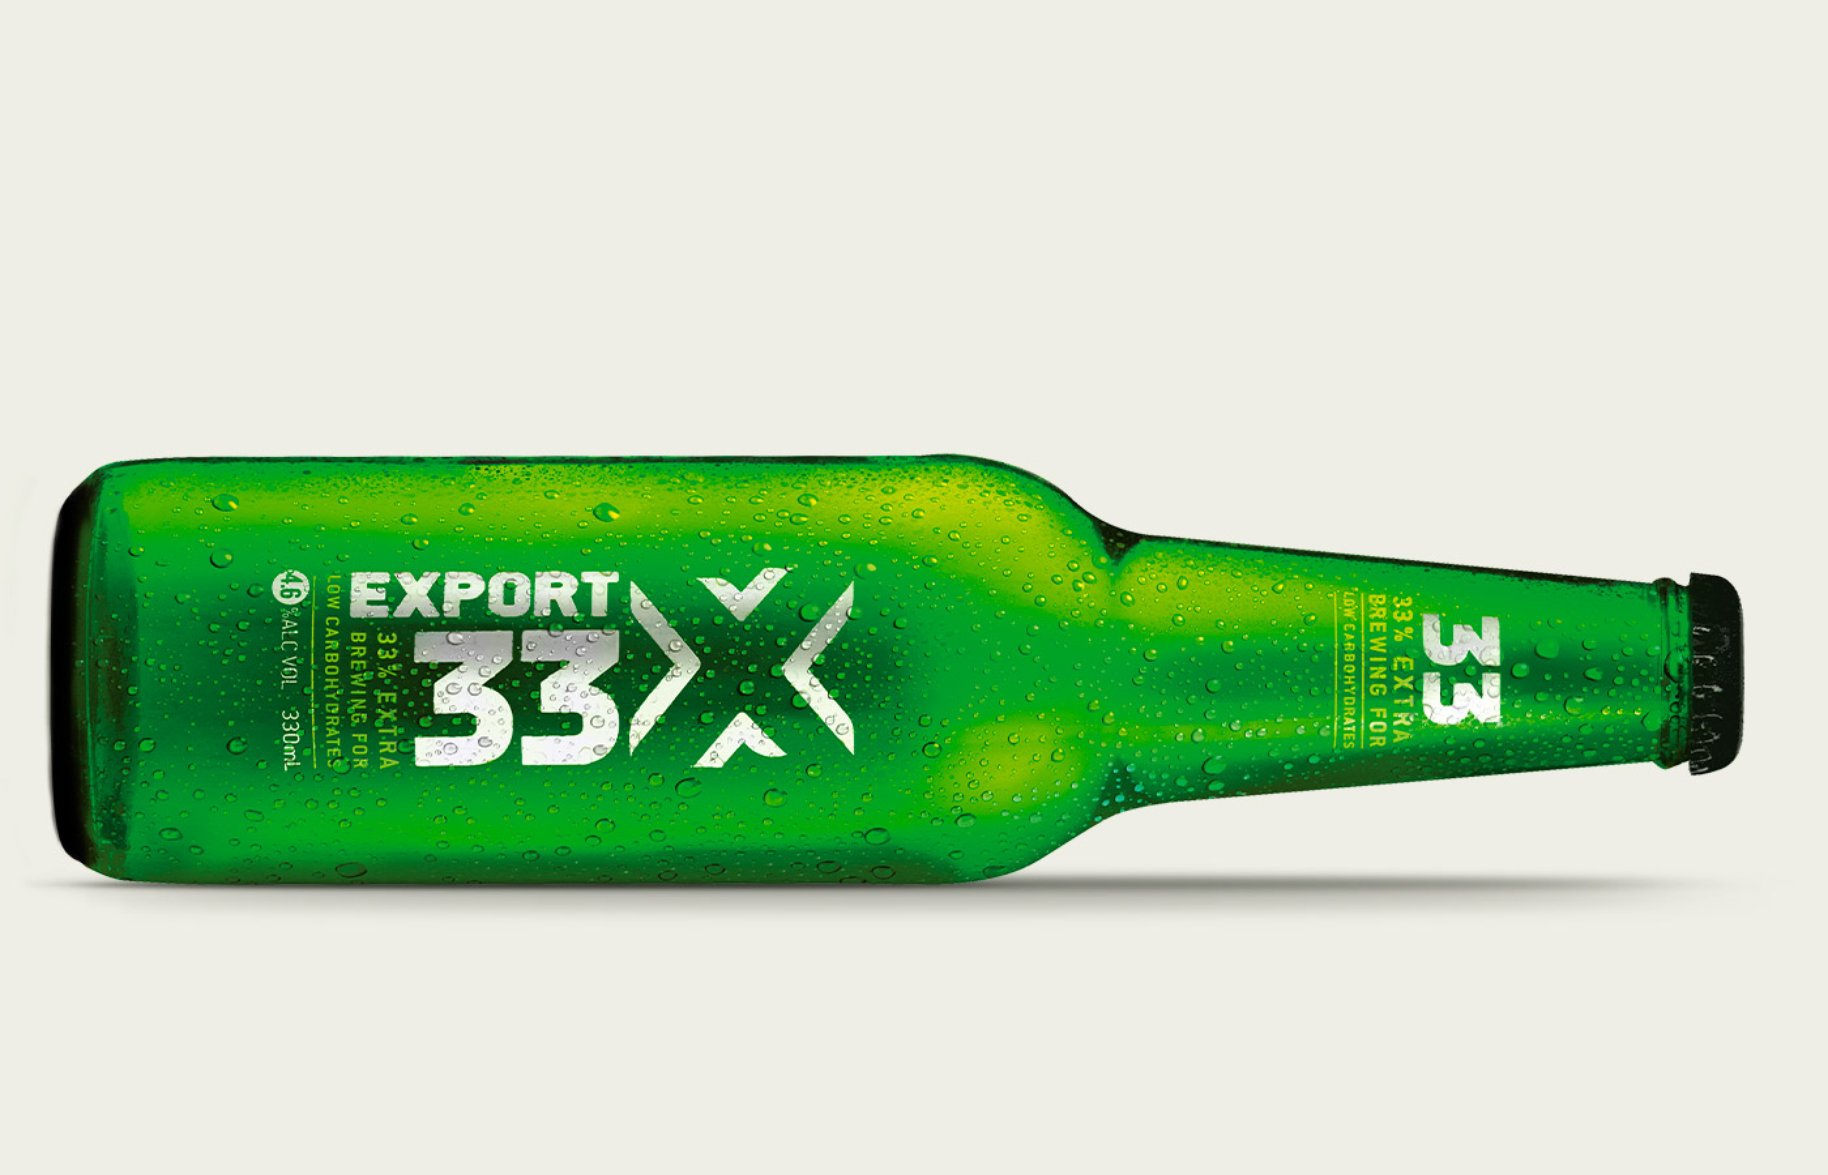 DB Export 33 Bottle Packaging